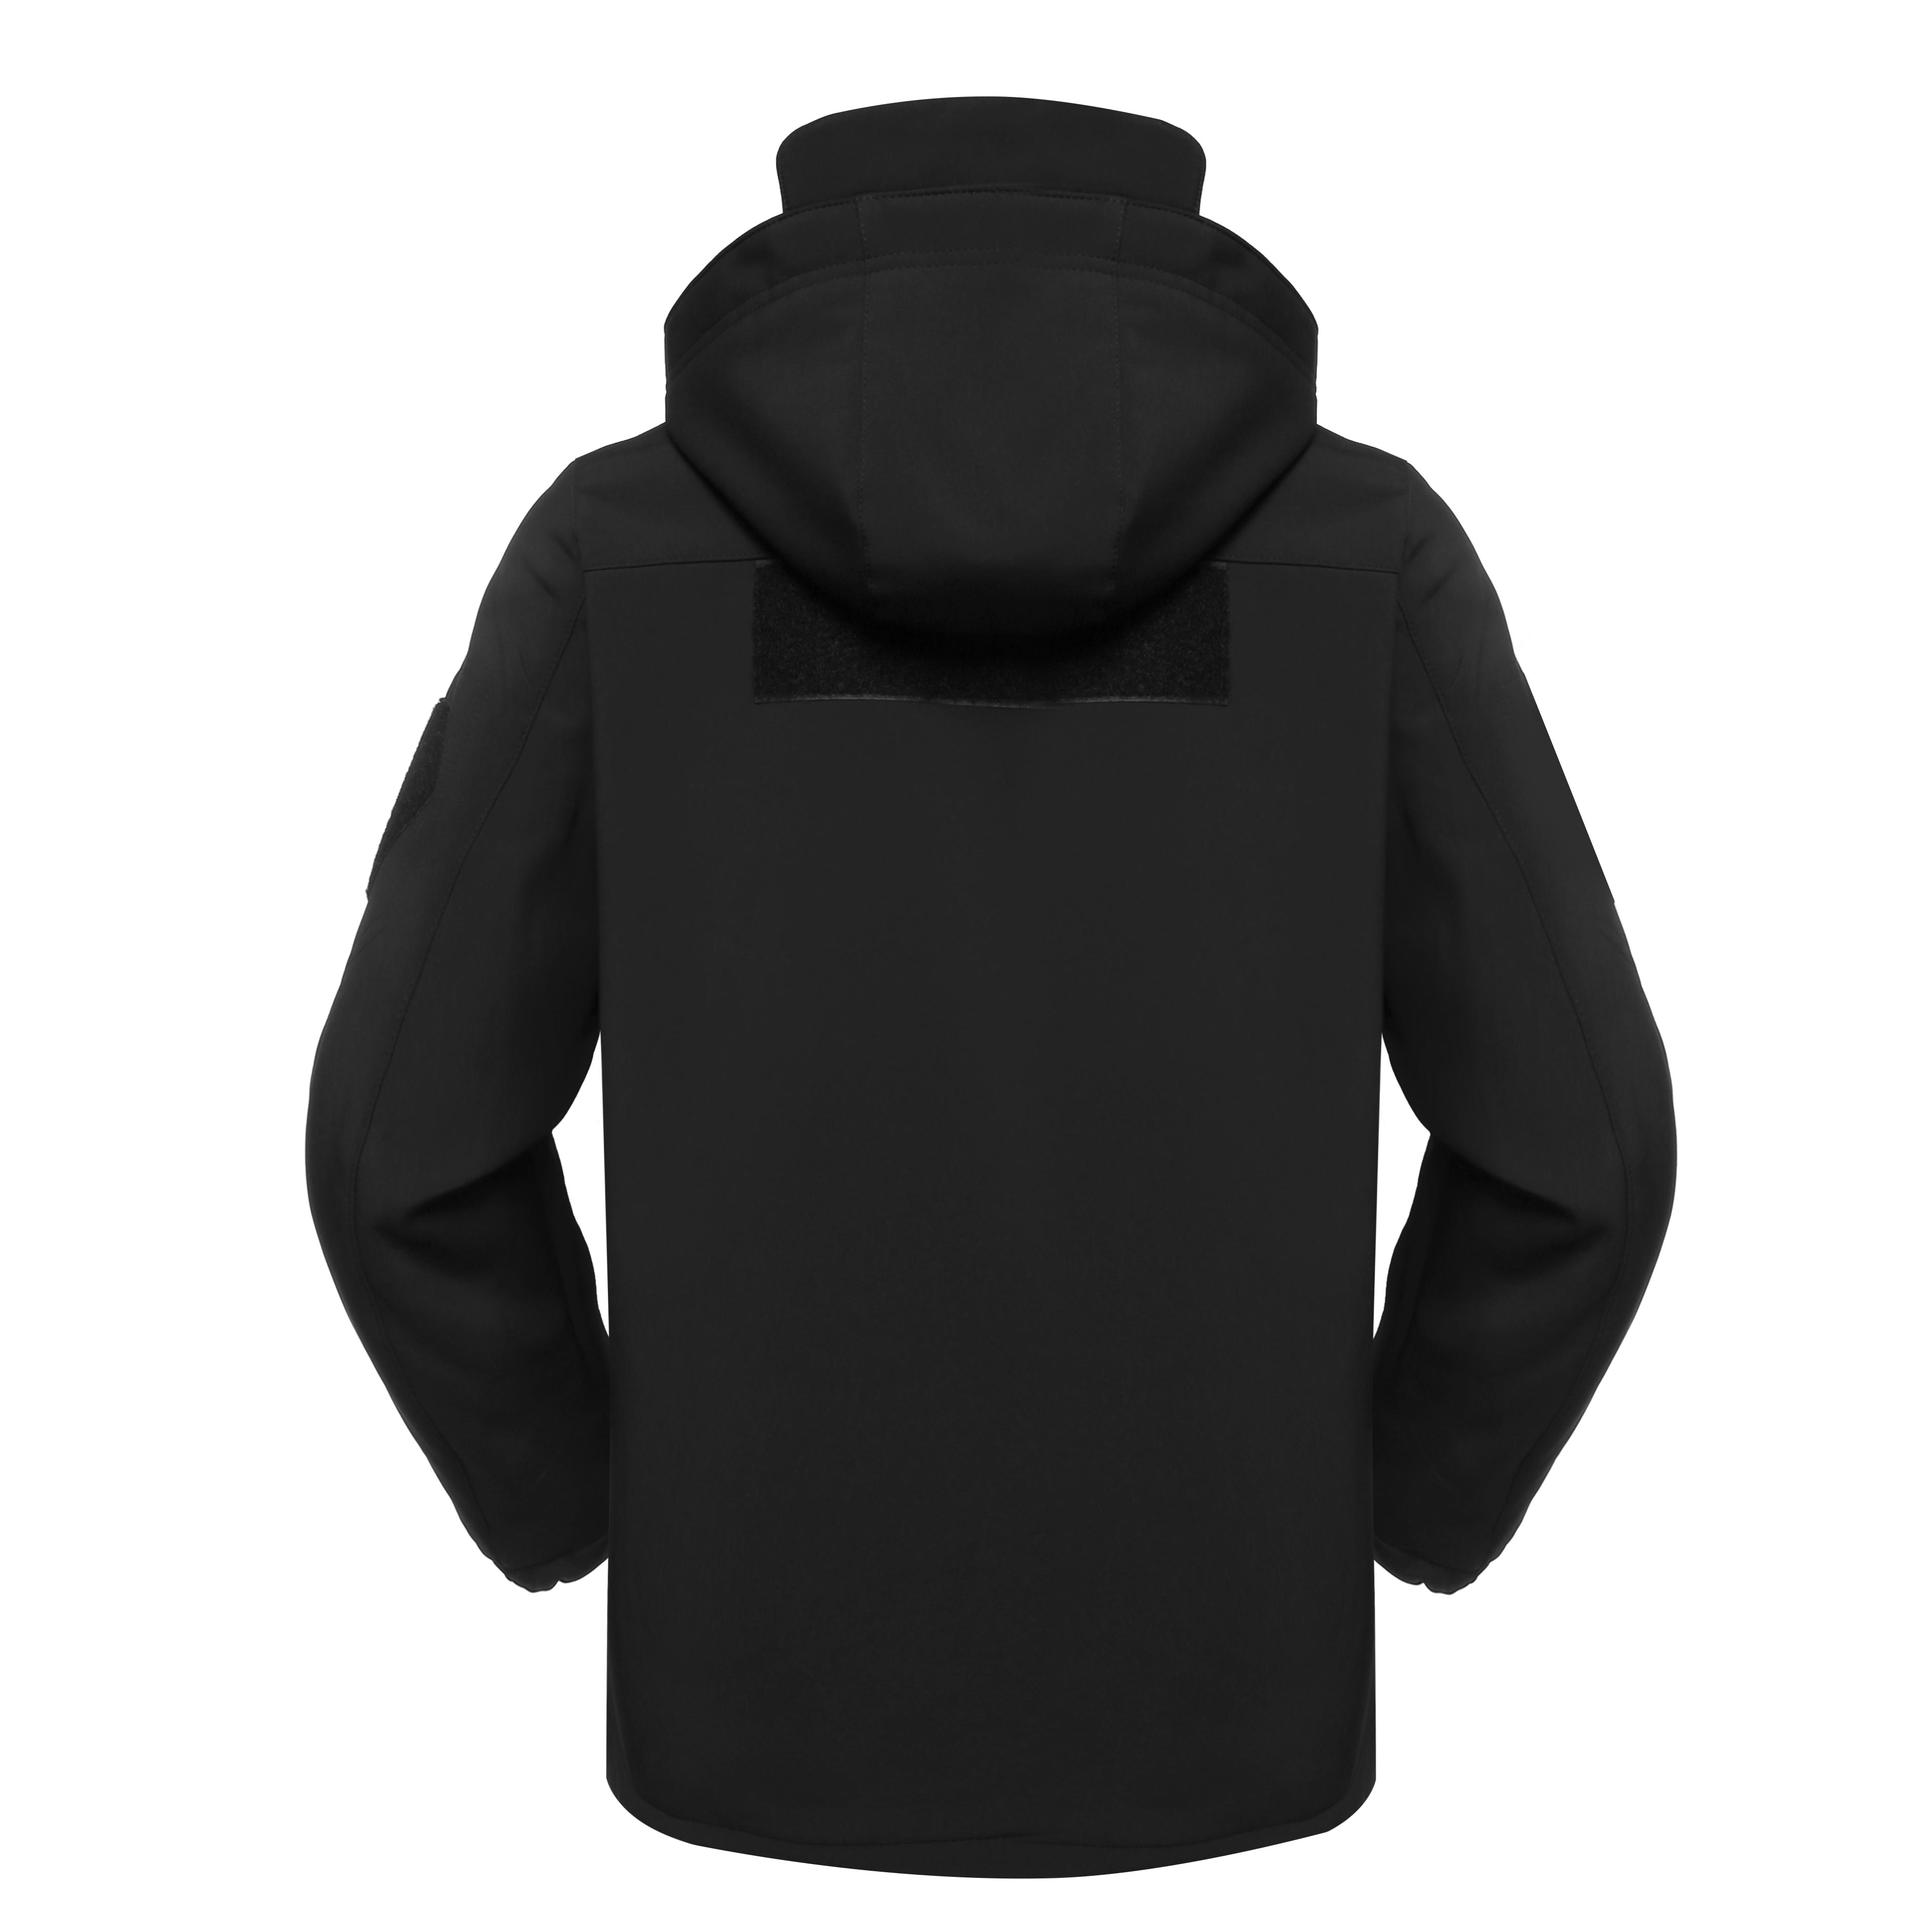 Black military fleece jacket for outdoors MJ06